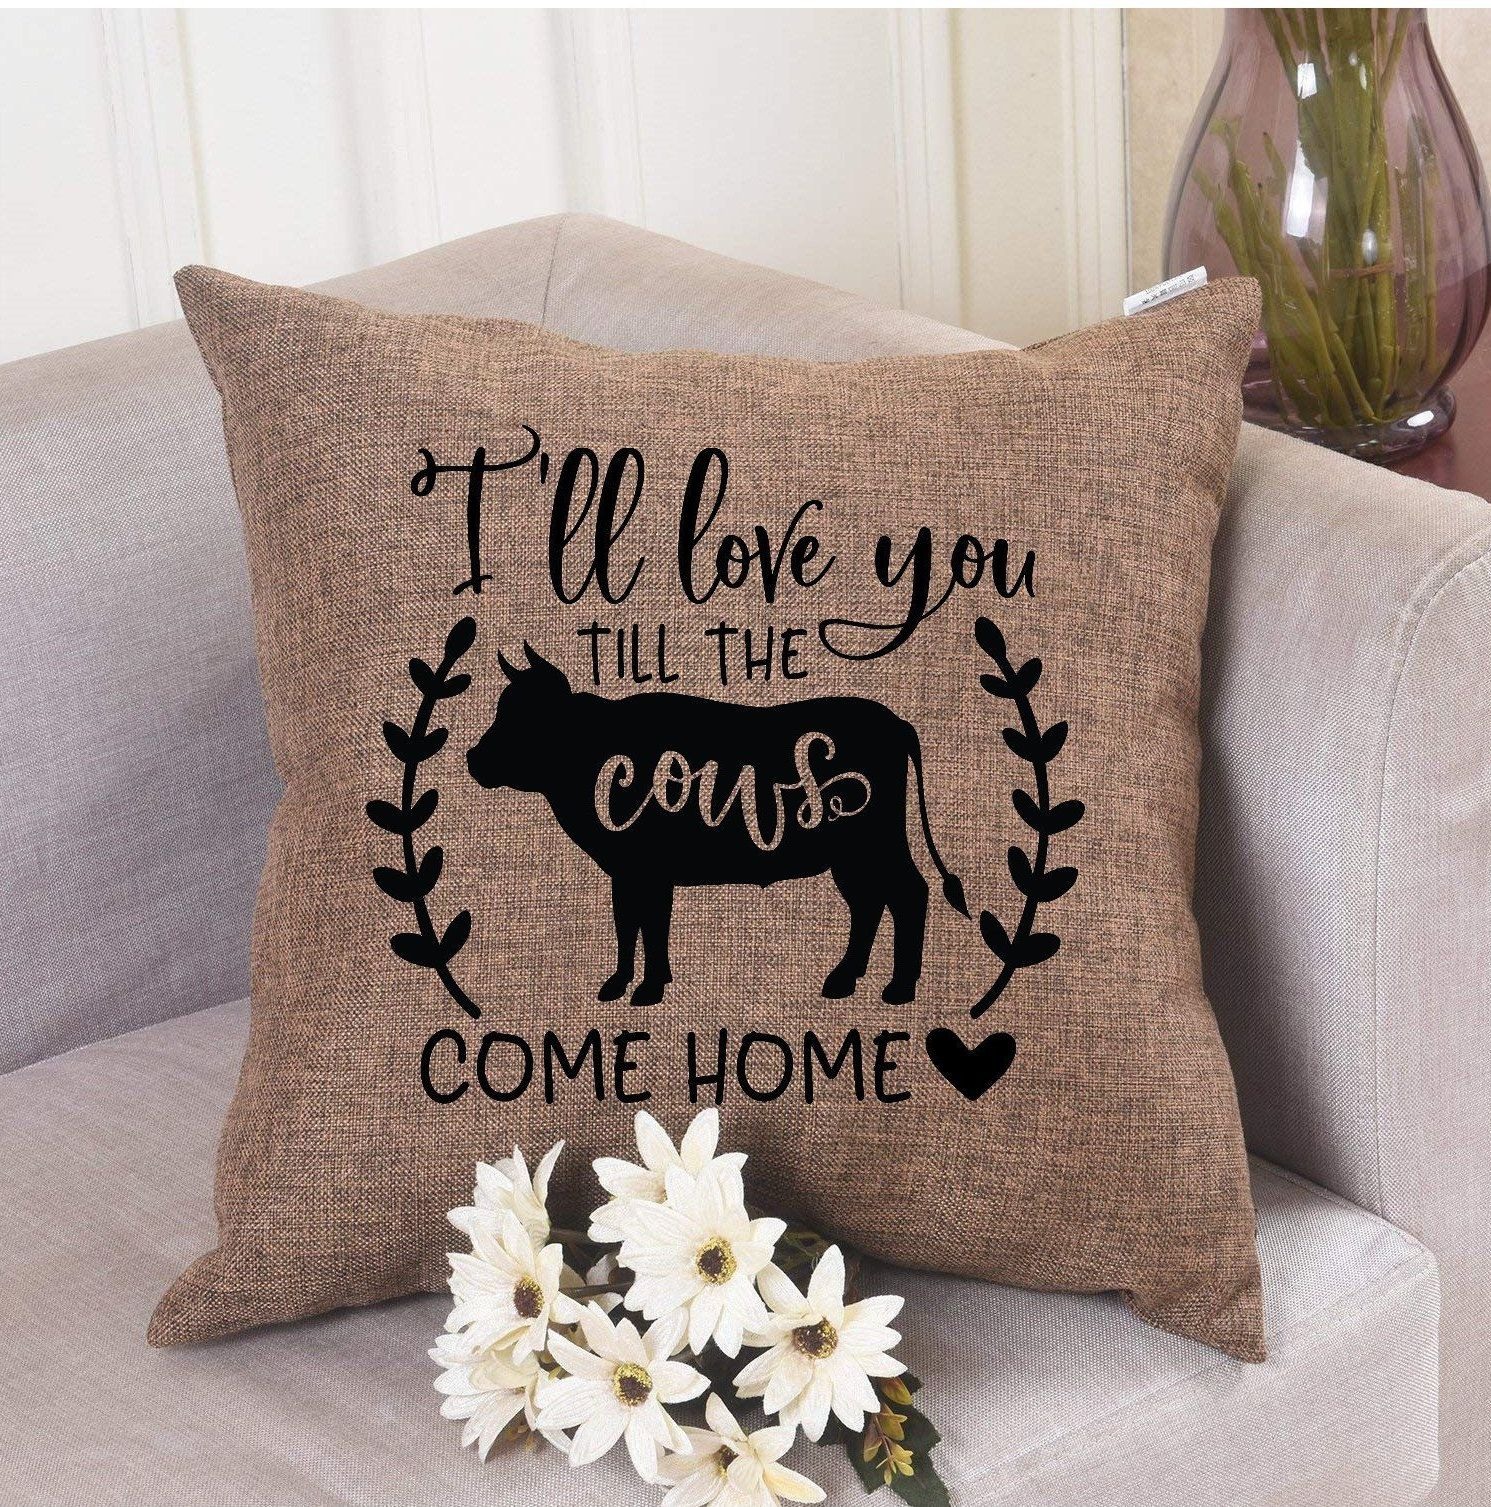 I Ll Love You Til The Cows Come Home Pillow Cover Custom Pillow Cover Pillow Cover Gifts Valentines Day Cow Pillow Farm Pillow Cover Custom Pillow Covers Pillows Custom Pillows